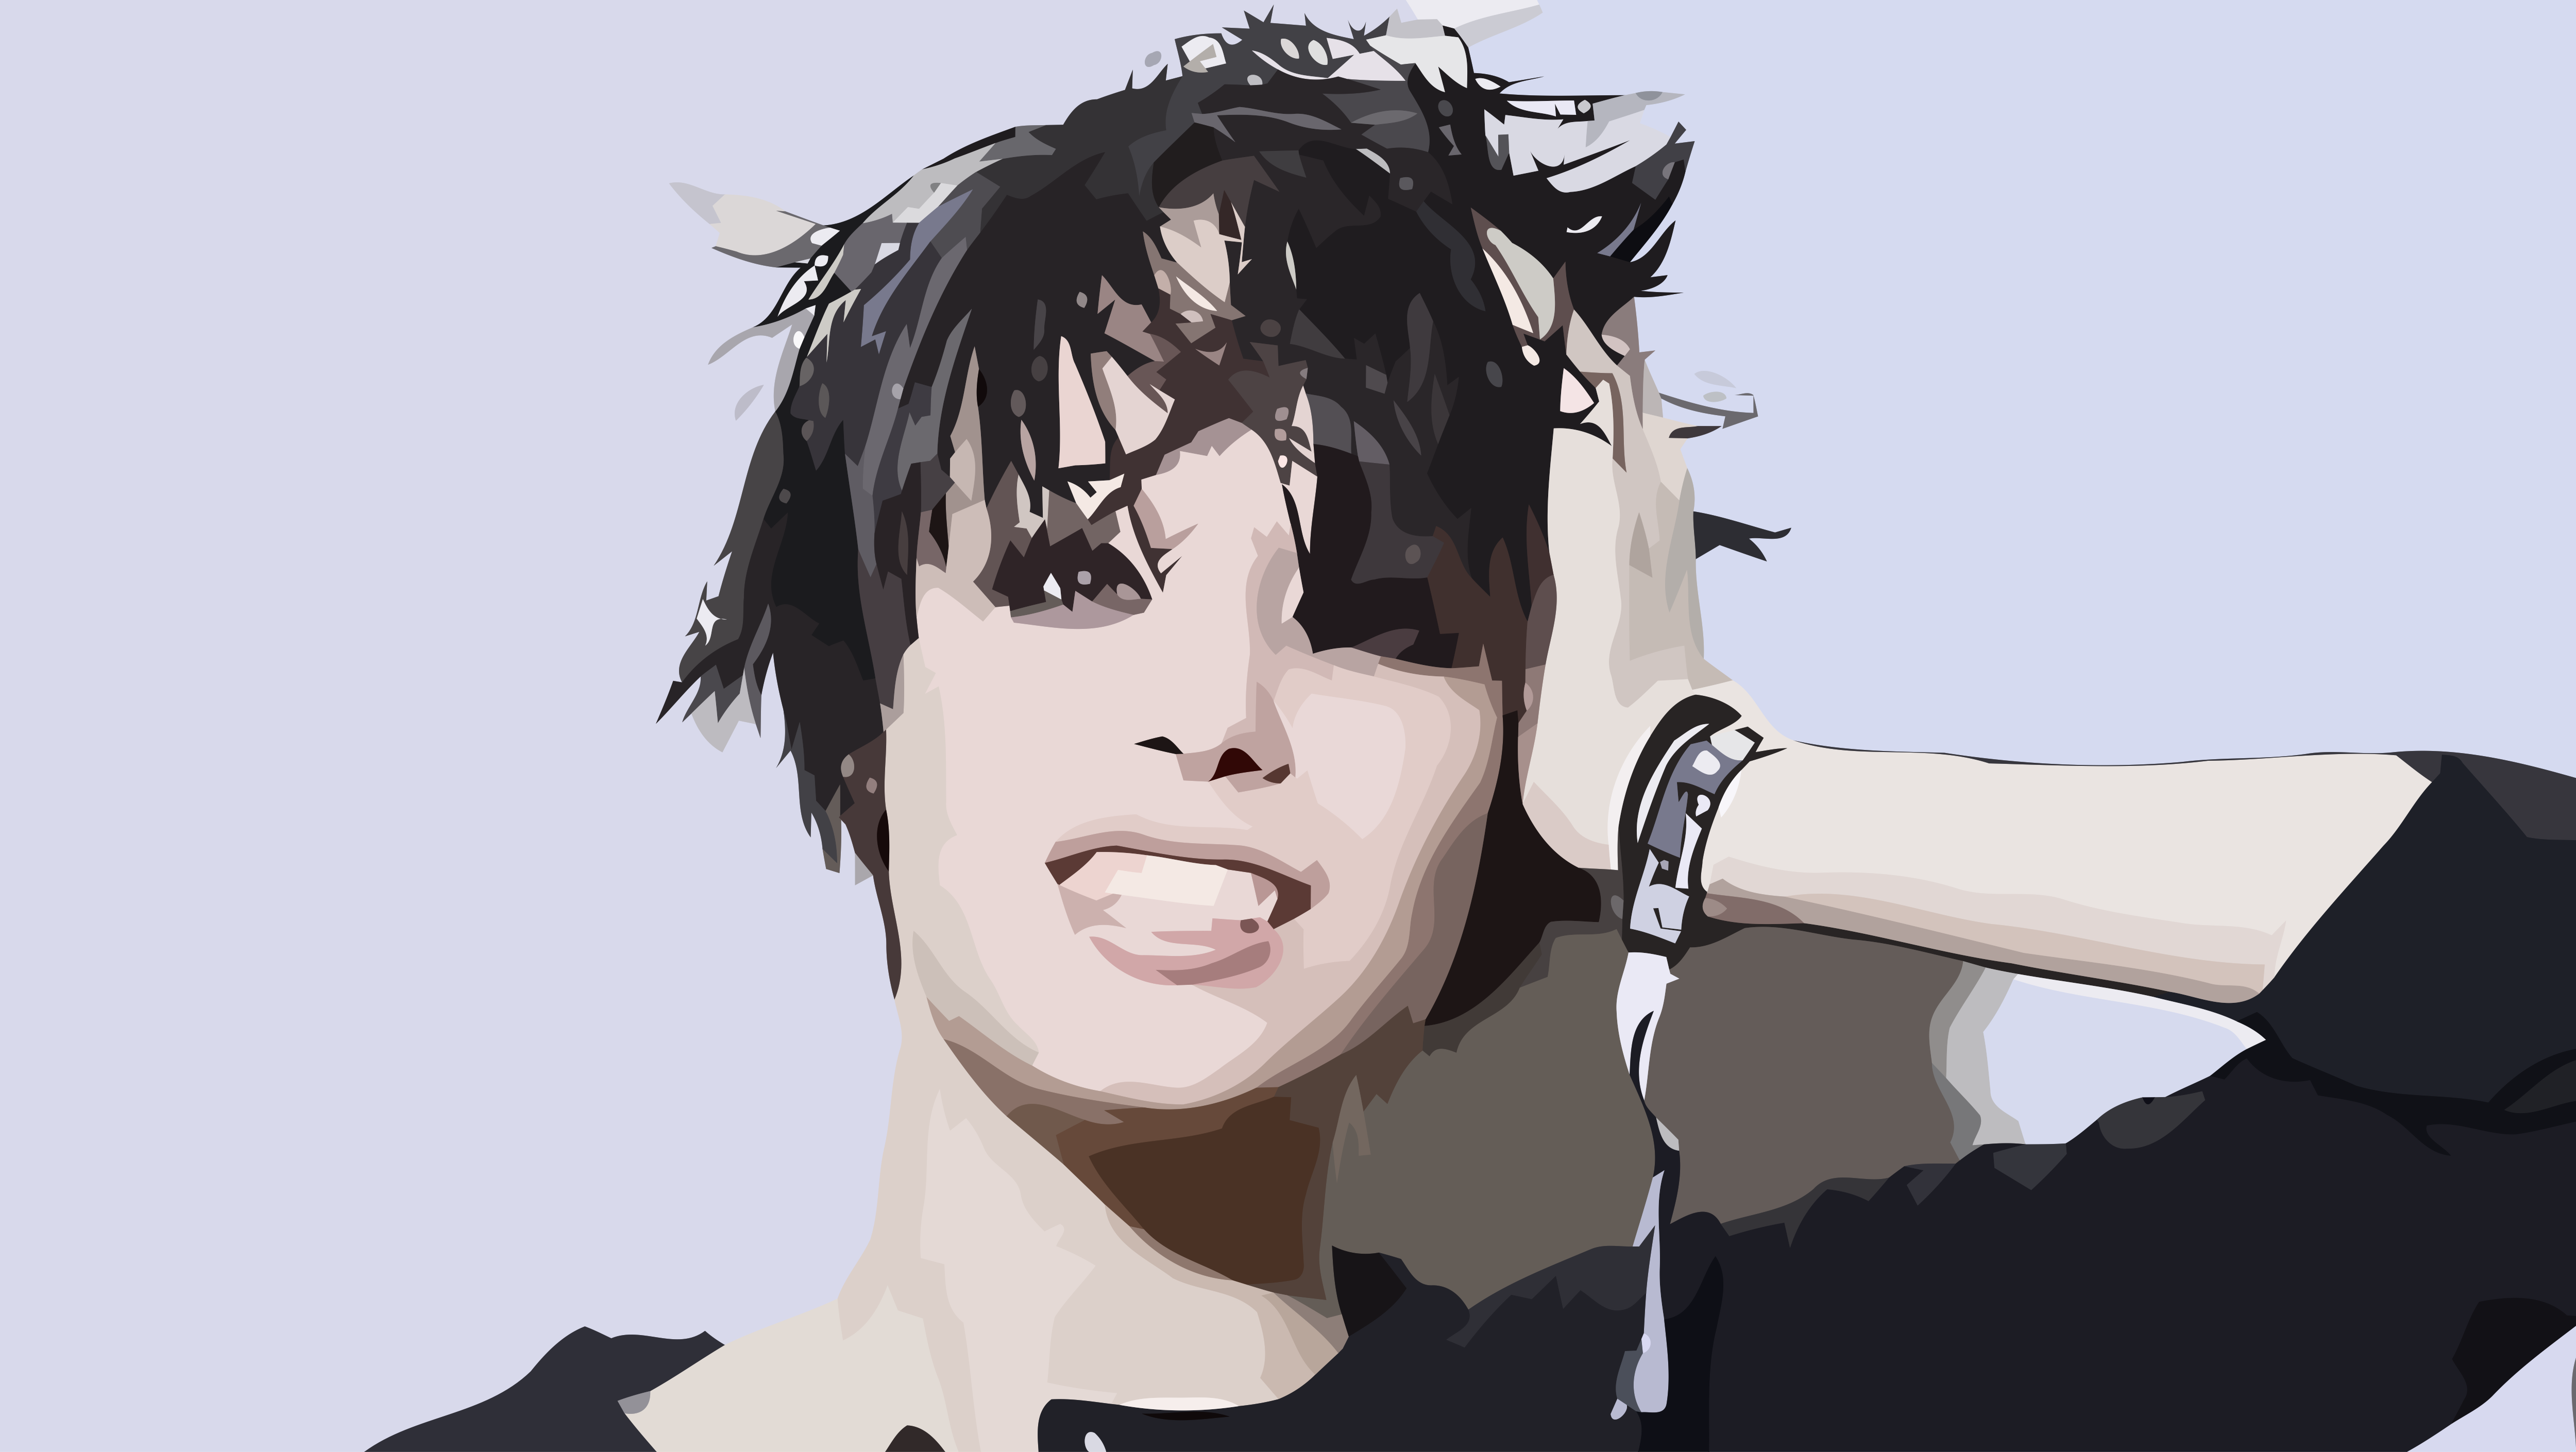 Music Alice Glass Wallpaper 5000x2819 px Download 5000x2819